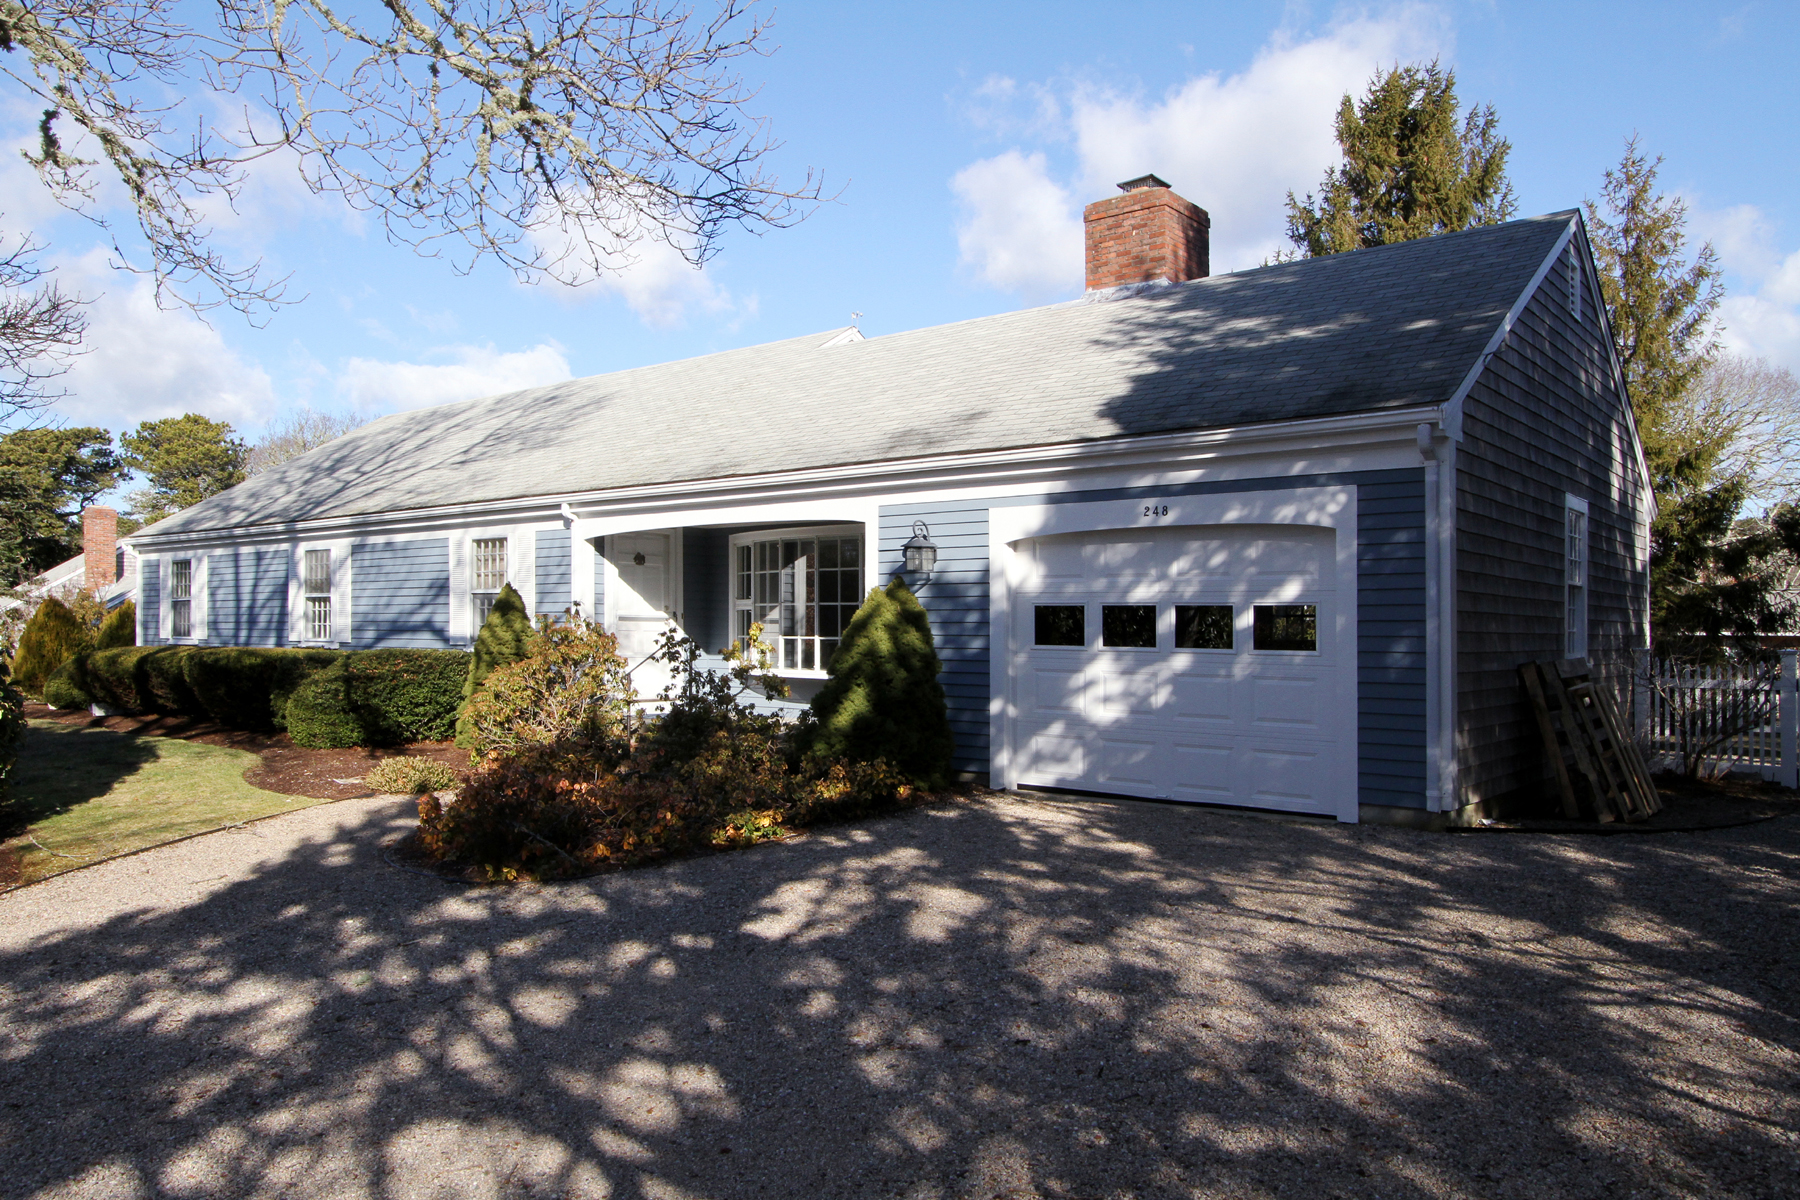 Single Family Home for Sale at 248 Chipping Stone Road, Chatham, MA Chatham, Massachusetts, 02633 United States